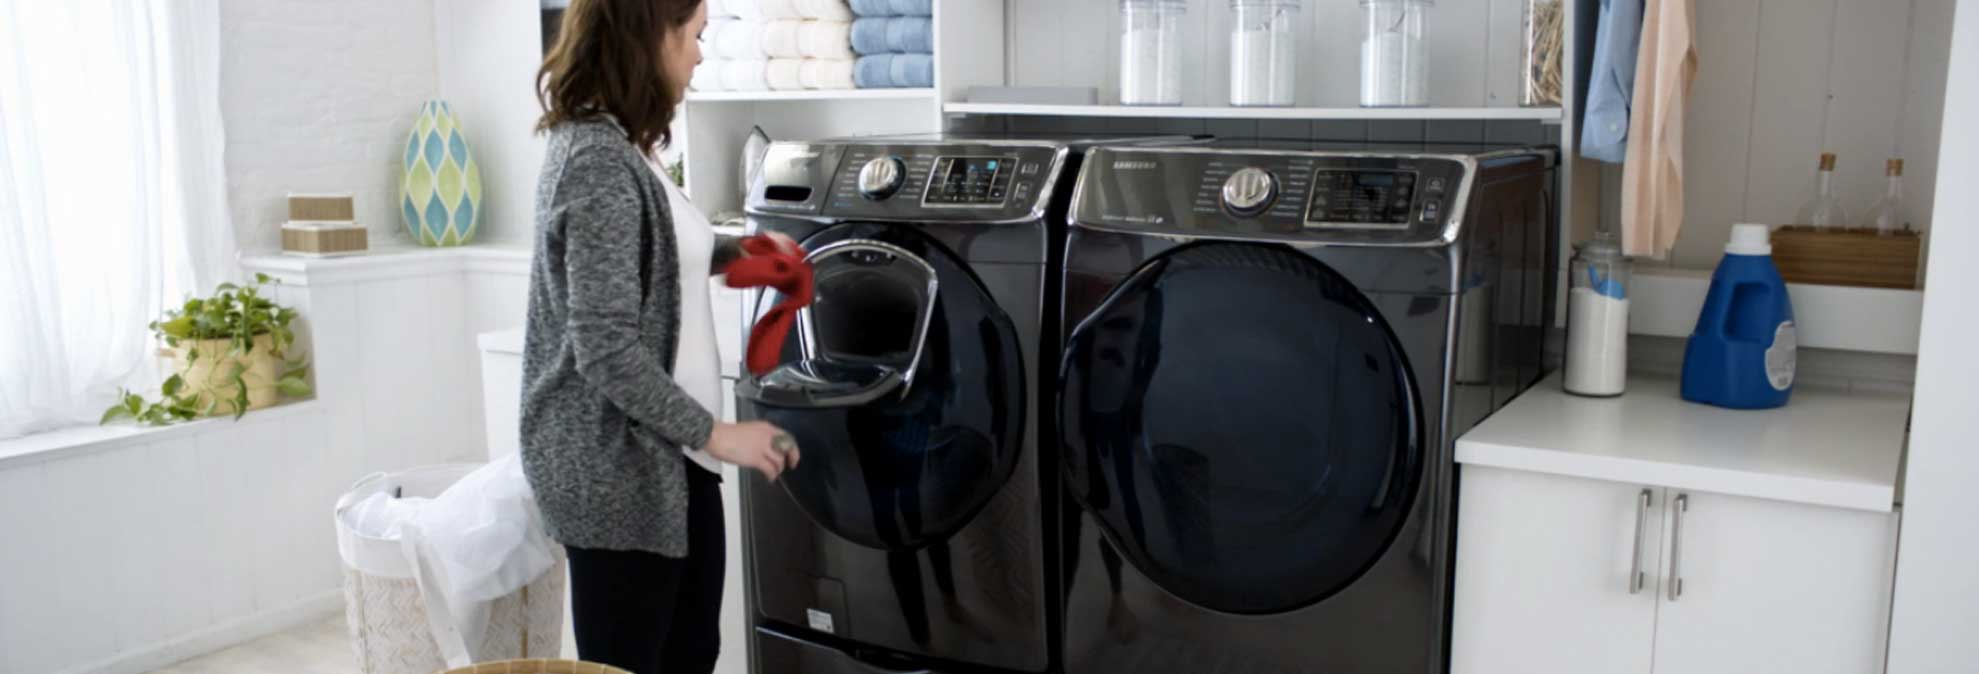 Samsung AddWash Laundry Feature  Consumer Reports